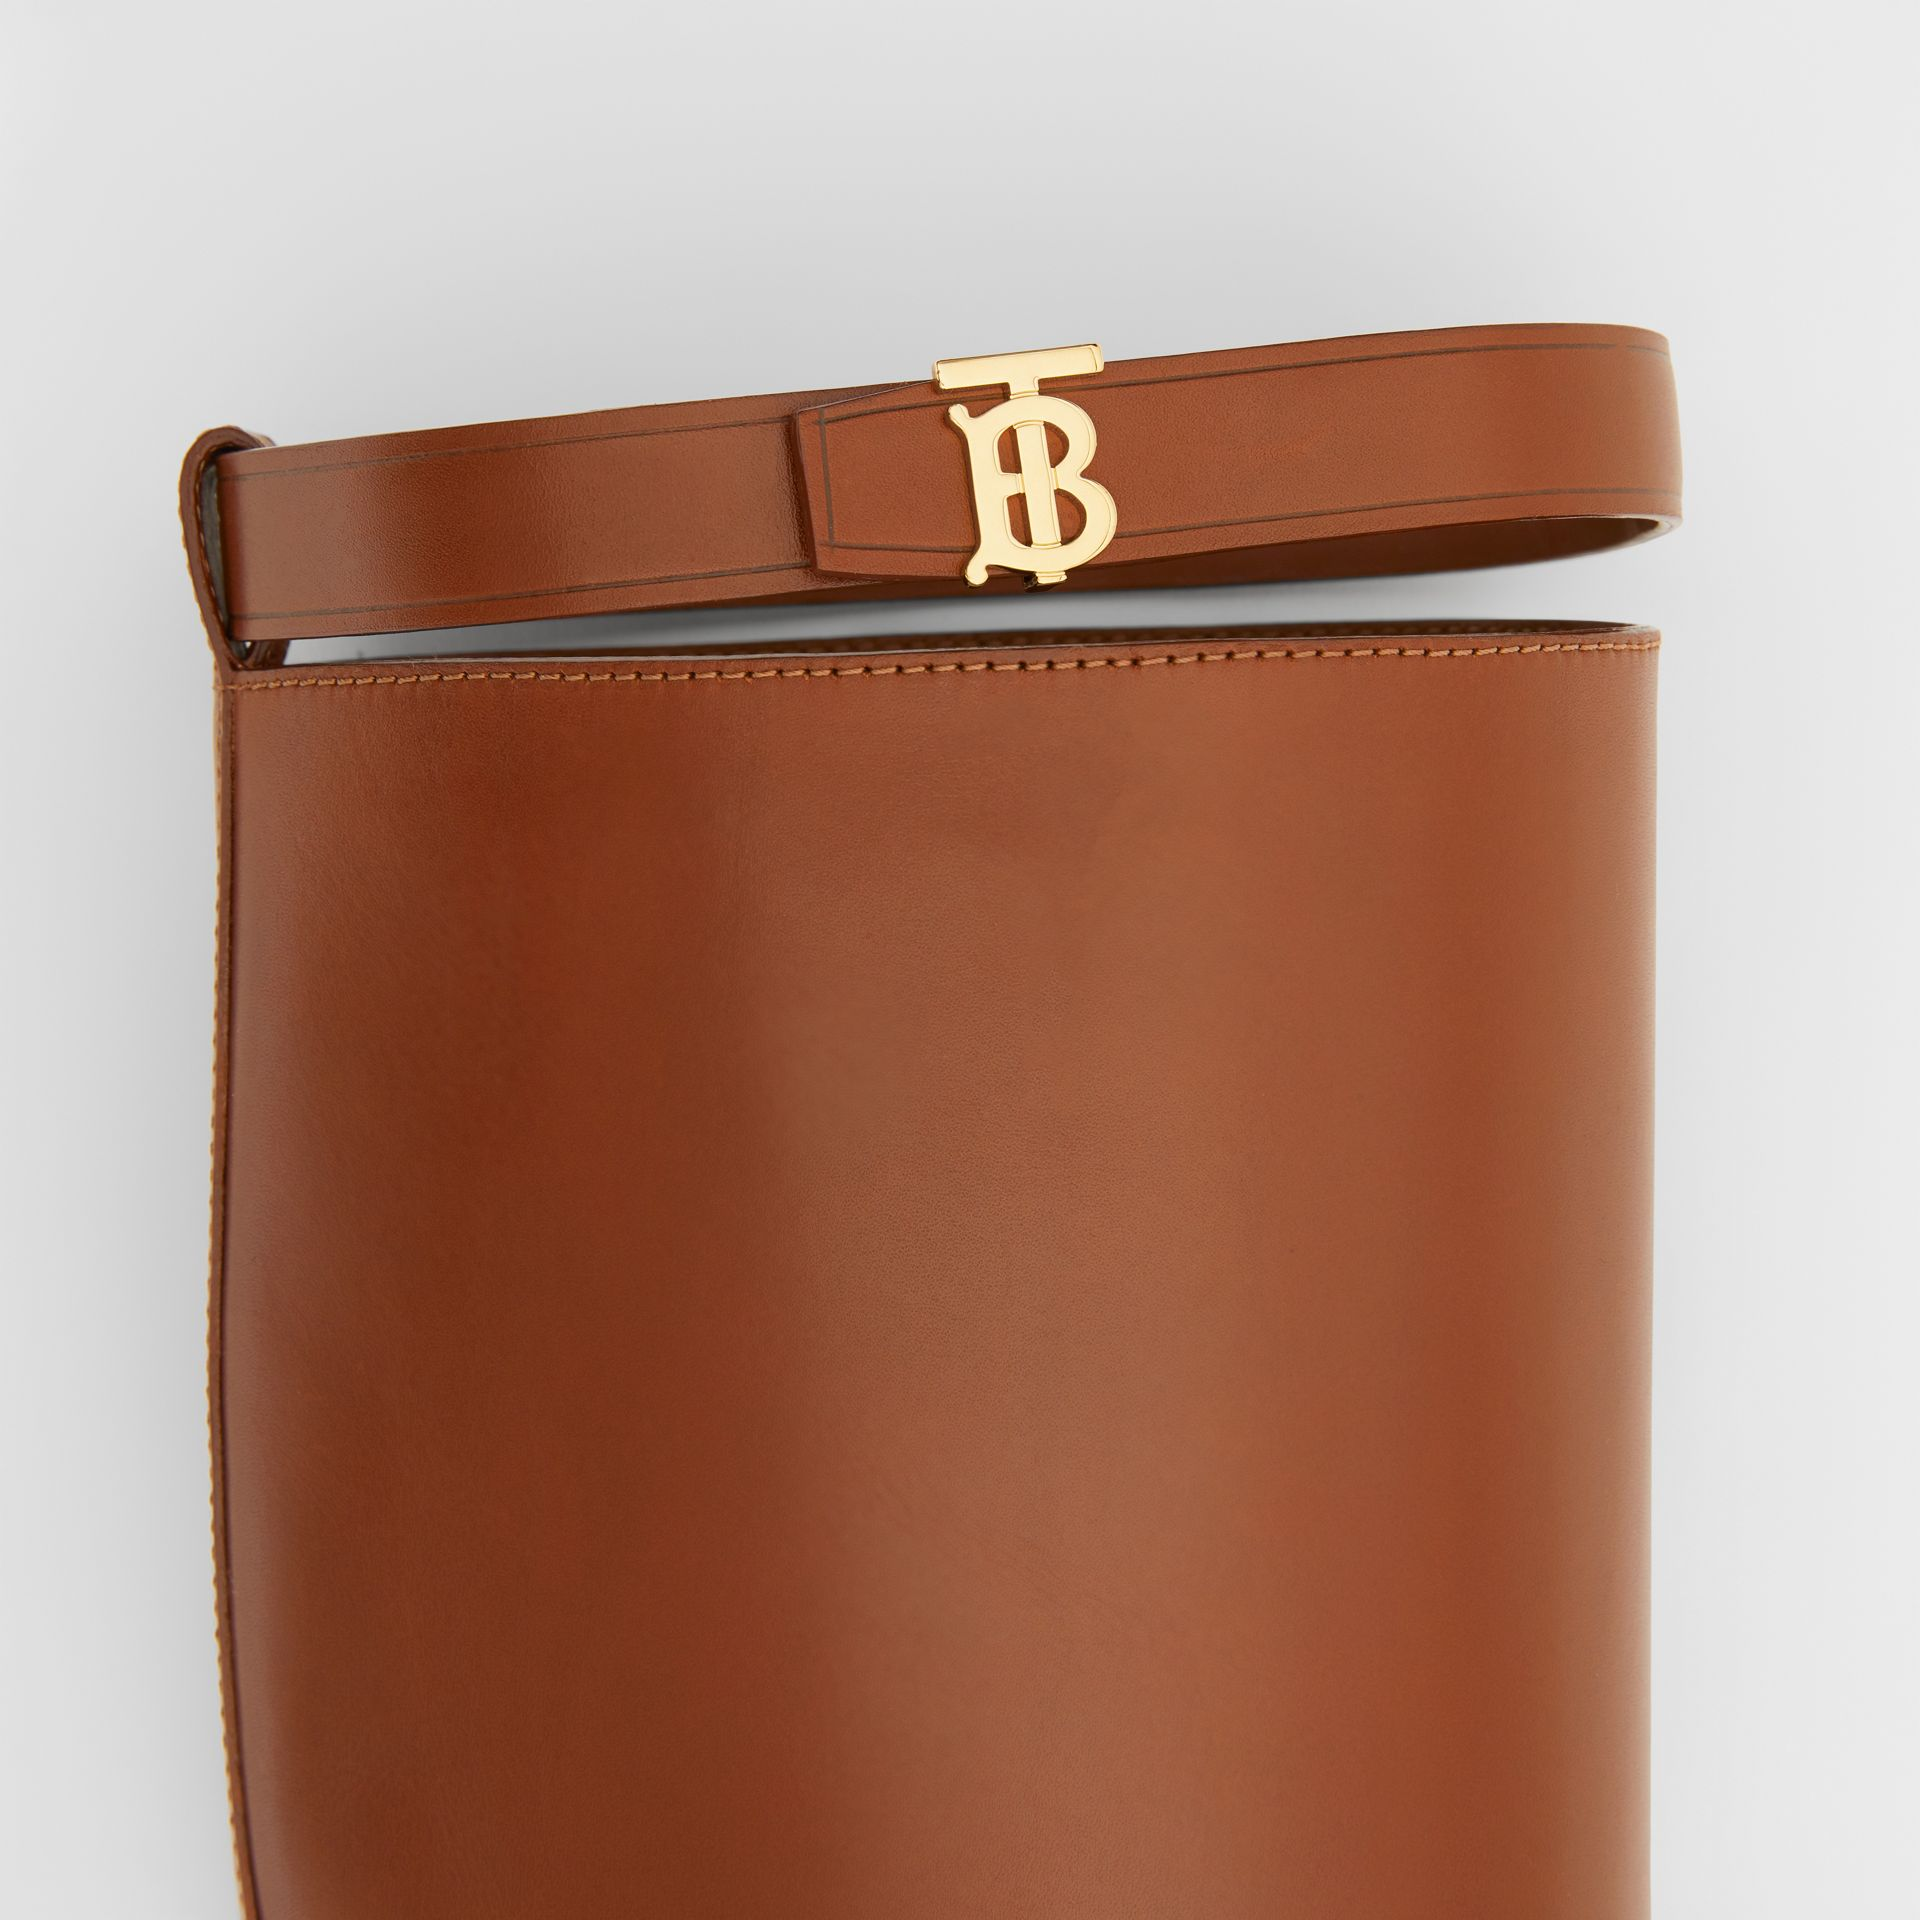 Monogram Motif Leather Knee-high Boots in Tan - Women | Burberry United Kingdom - gallery image 1